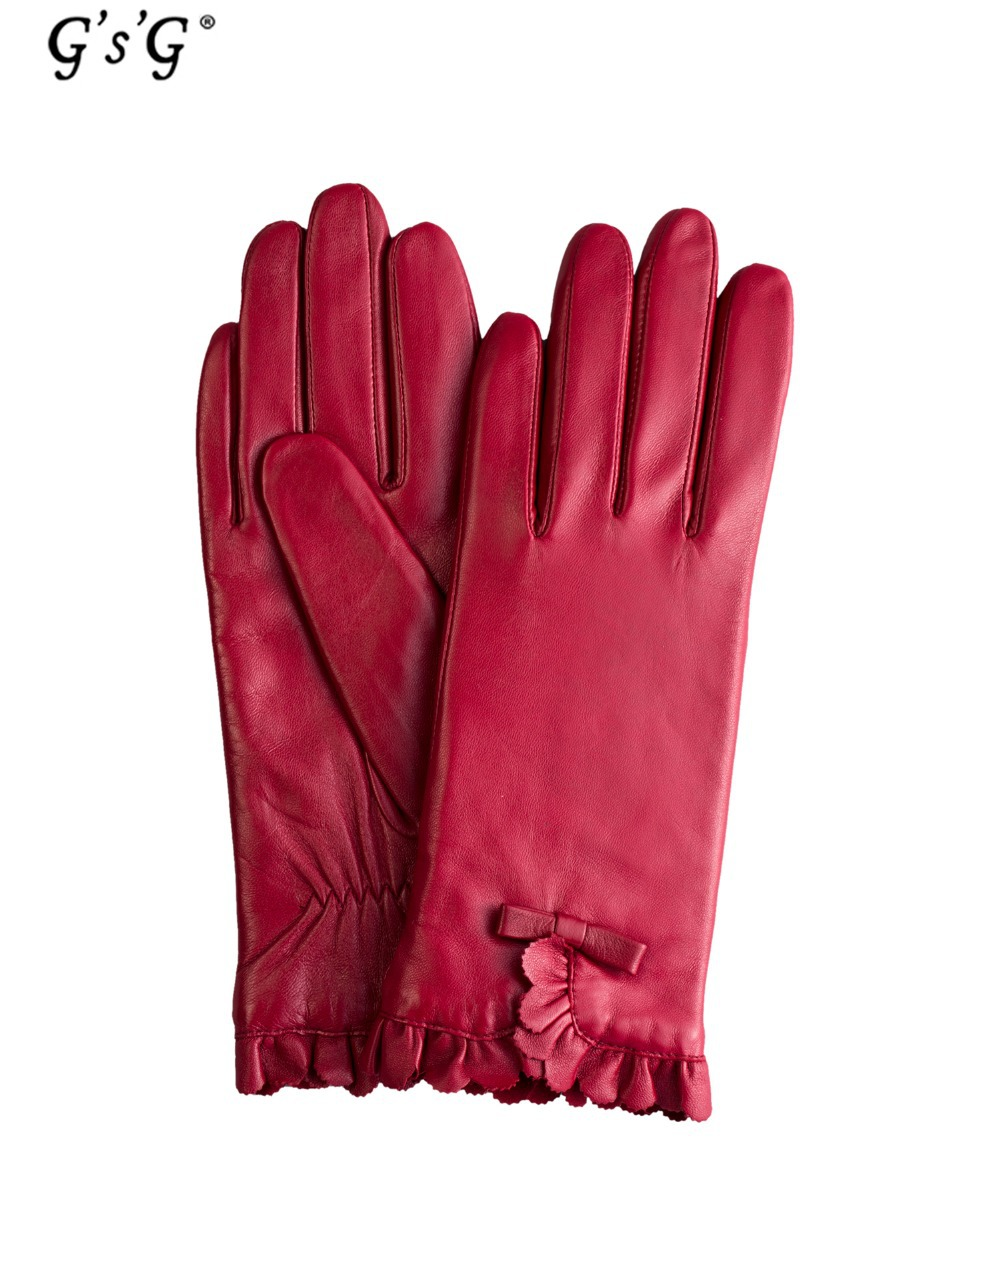 Buy ladies leather gloves online - Gsg New Floral Designer Genuine Leather Gloves For Fashion Womens Fingers Warm Ladies Luvas Online Shopping